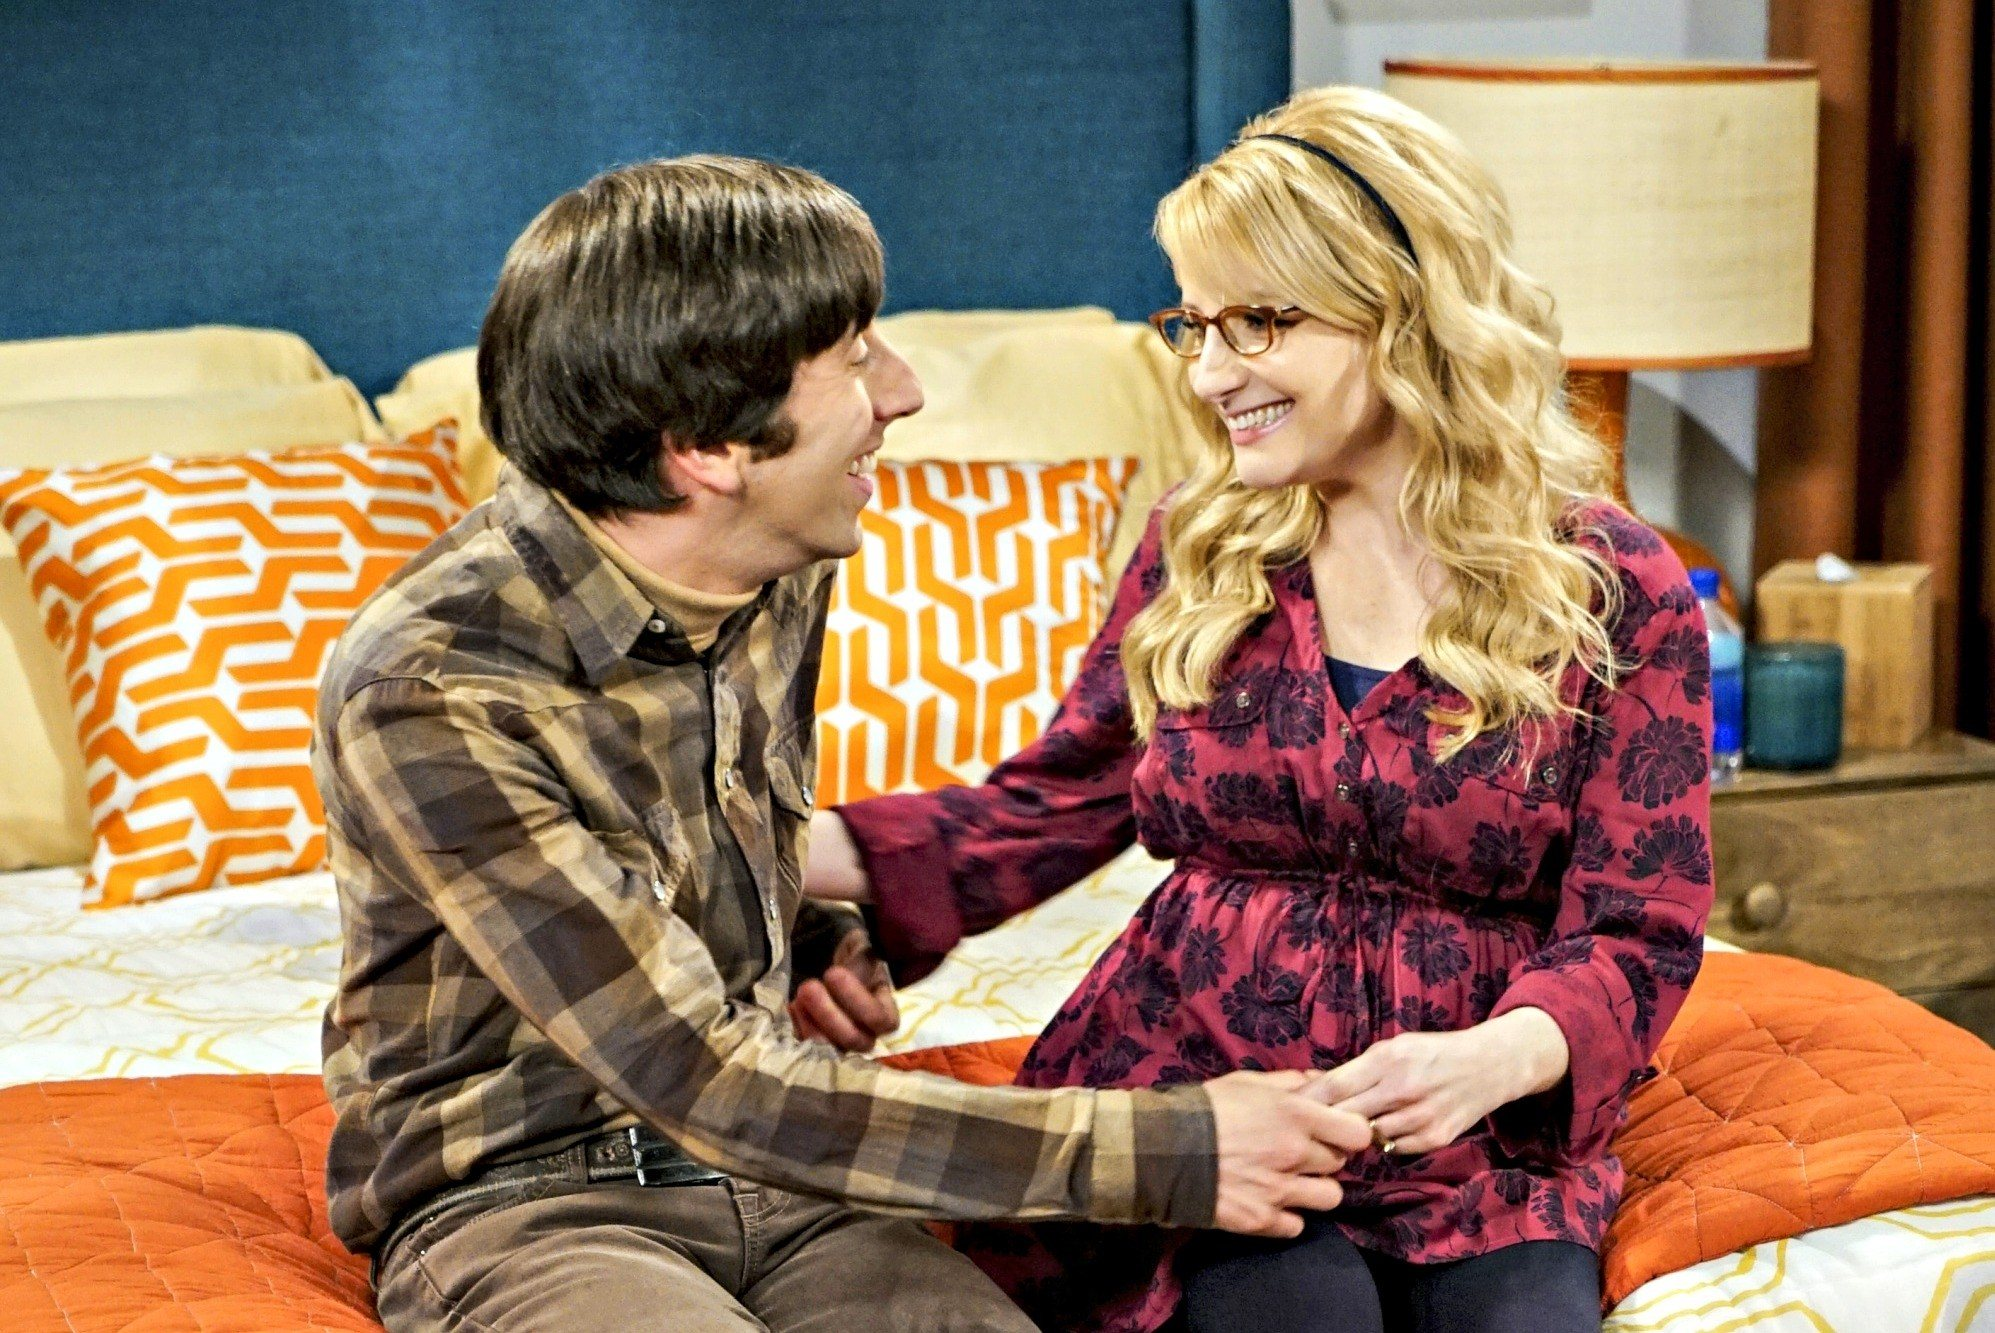 Howard and Bernadette hold hands while sitting on a bed in The Big Bang Theory